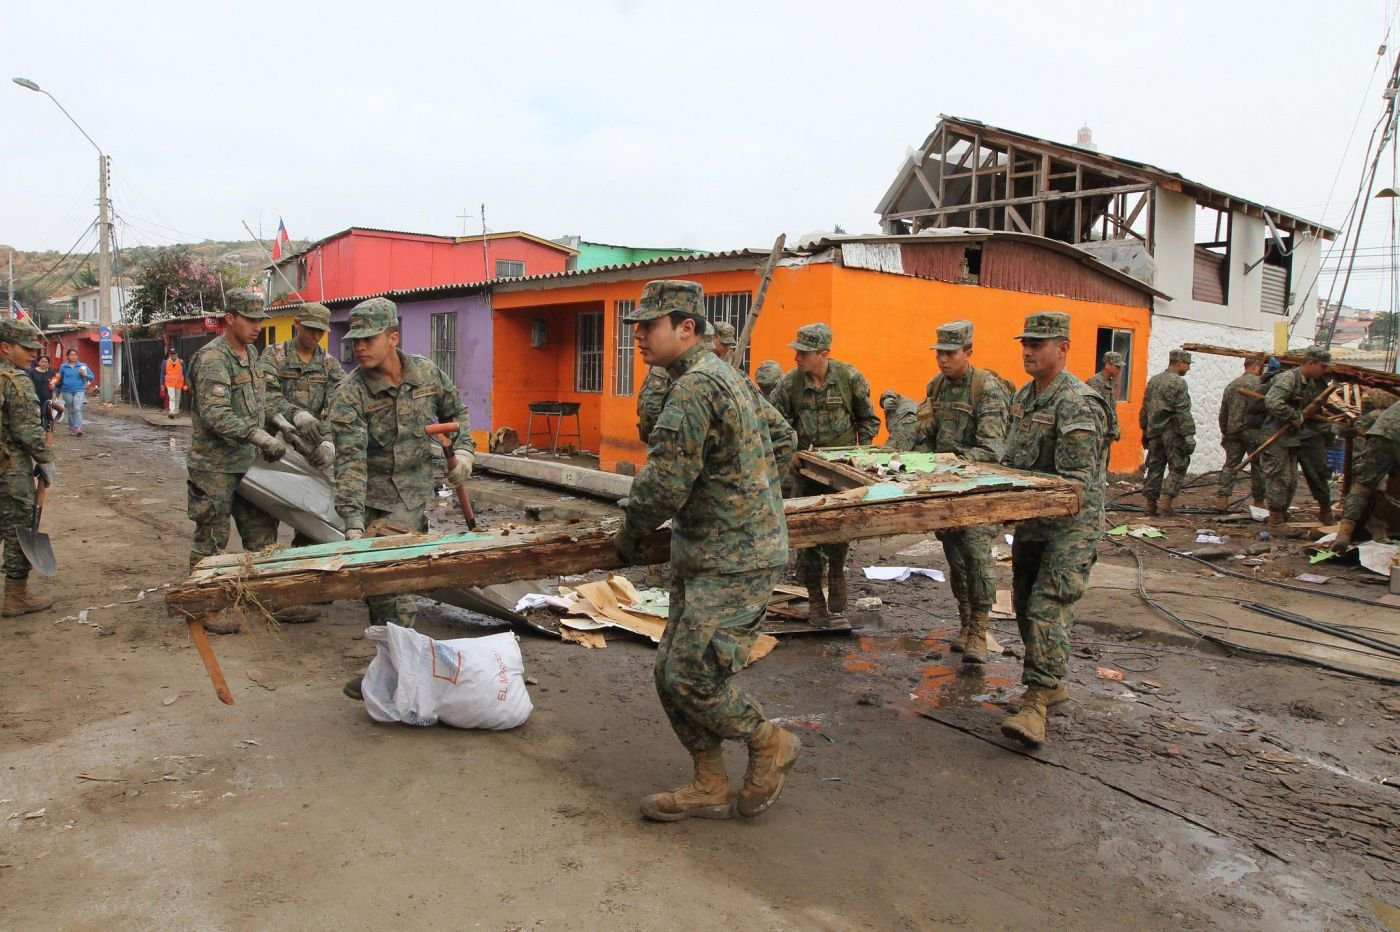 Chilean Navy Used Technology to Protect Civilians After Earthquake